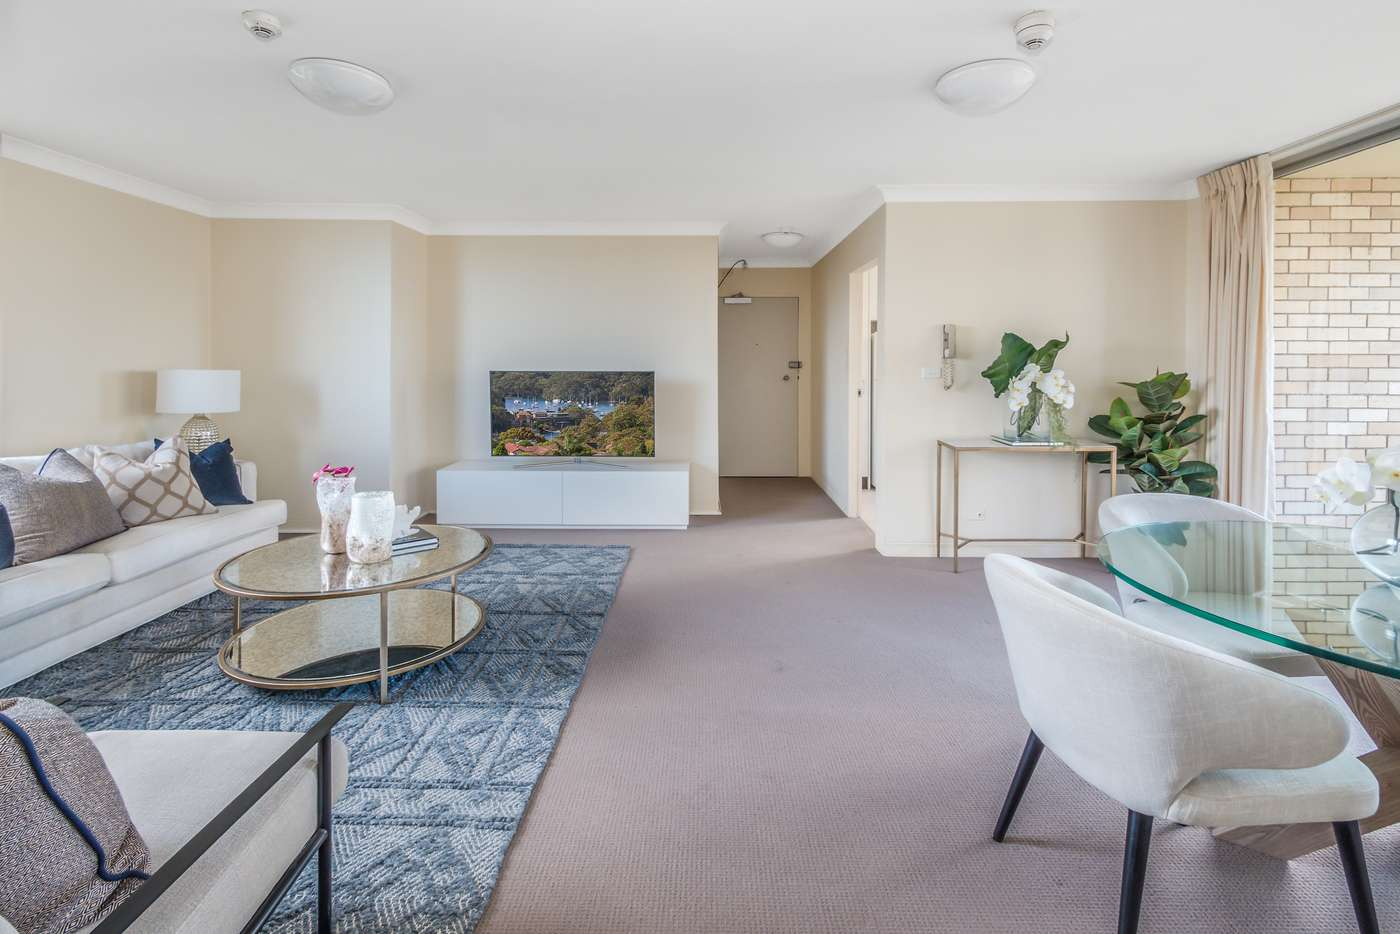 Sixth view of Homely apartment listing, 18/26-32 Gerard Street, Cremorne NSW 2090